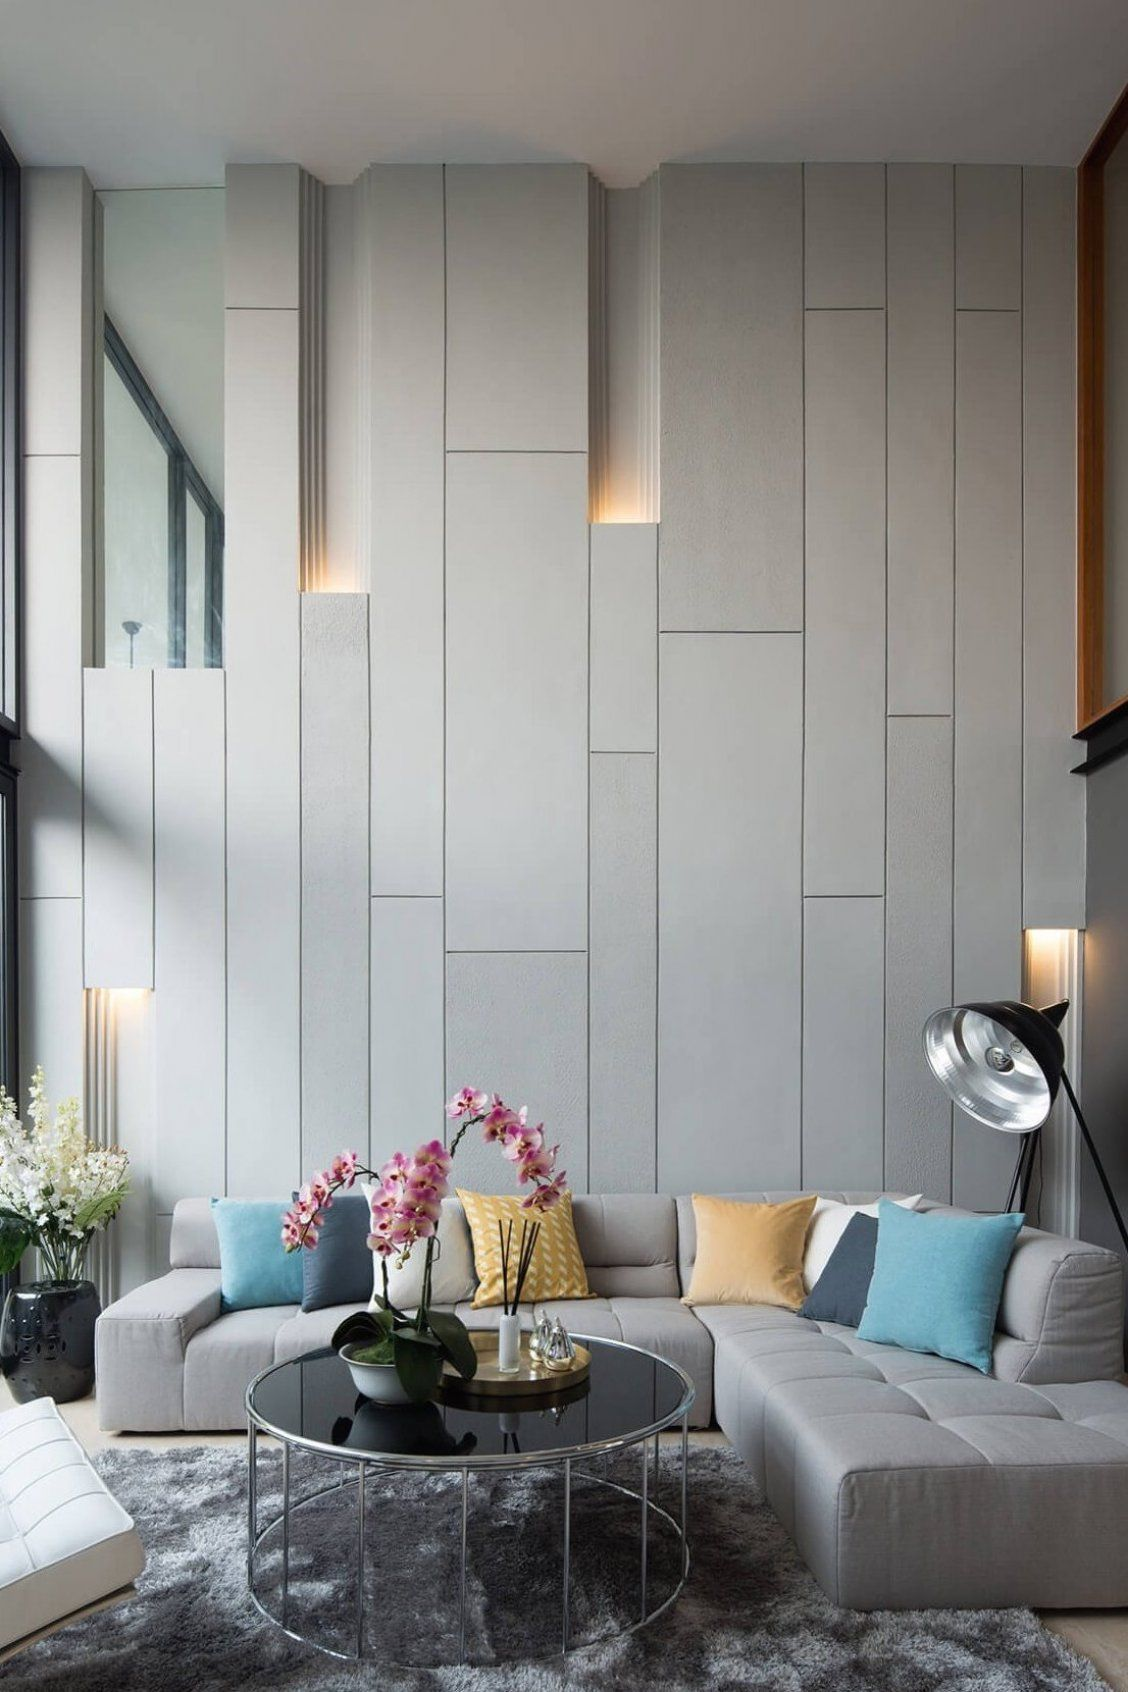 26 Best Modern Living Room Decorating Ideas And Designs Diy Decoration Ideas For Homes In 2020 Living Room Modern Living Room Design Modern Modern Living Room